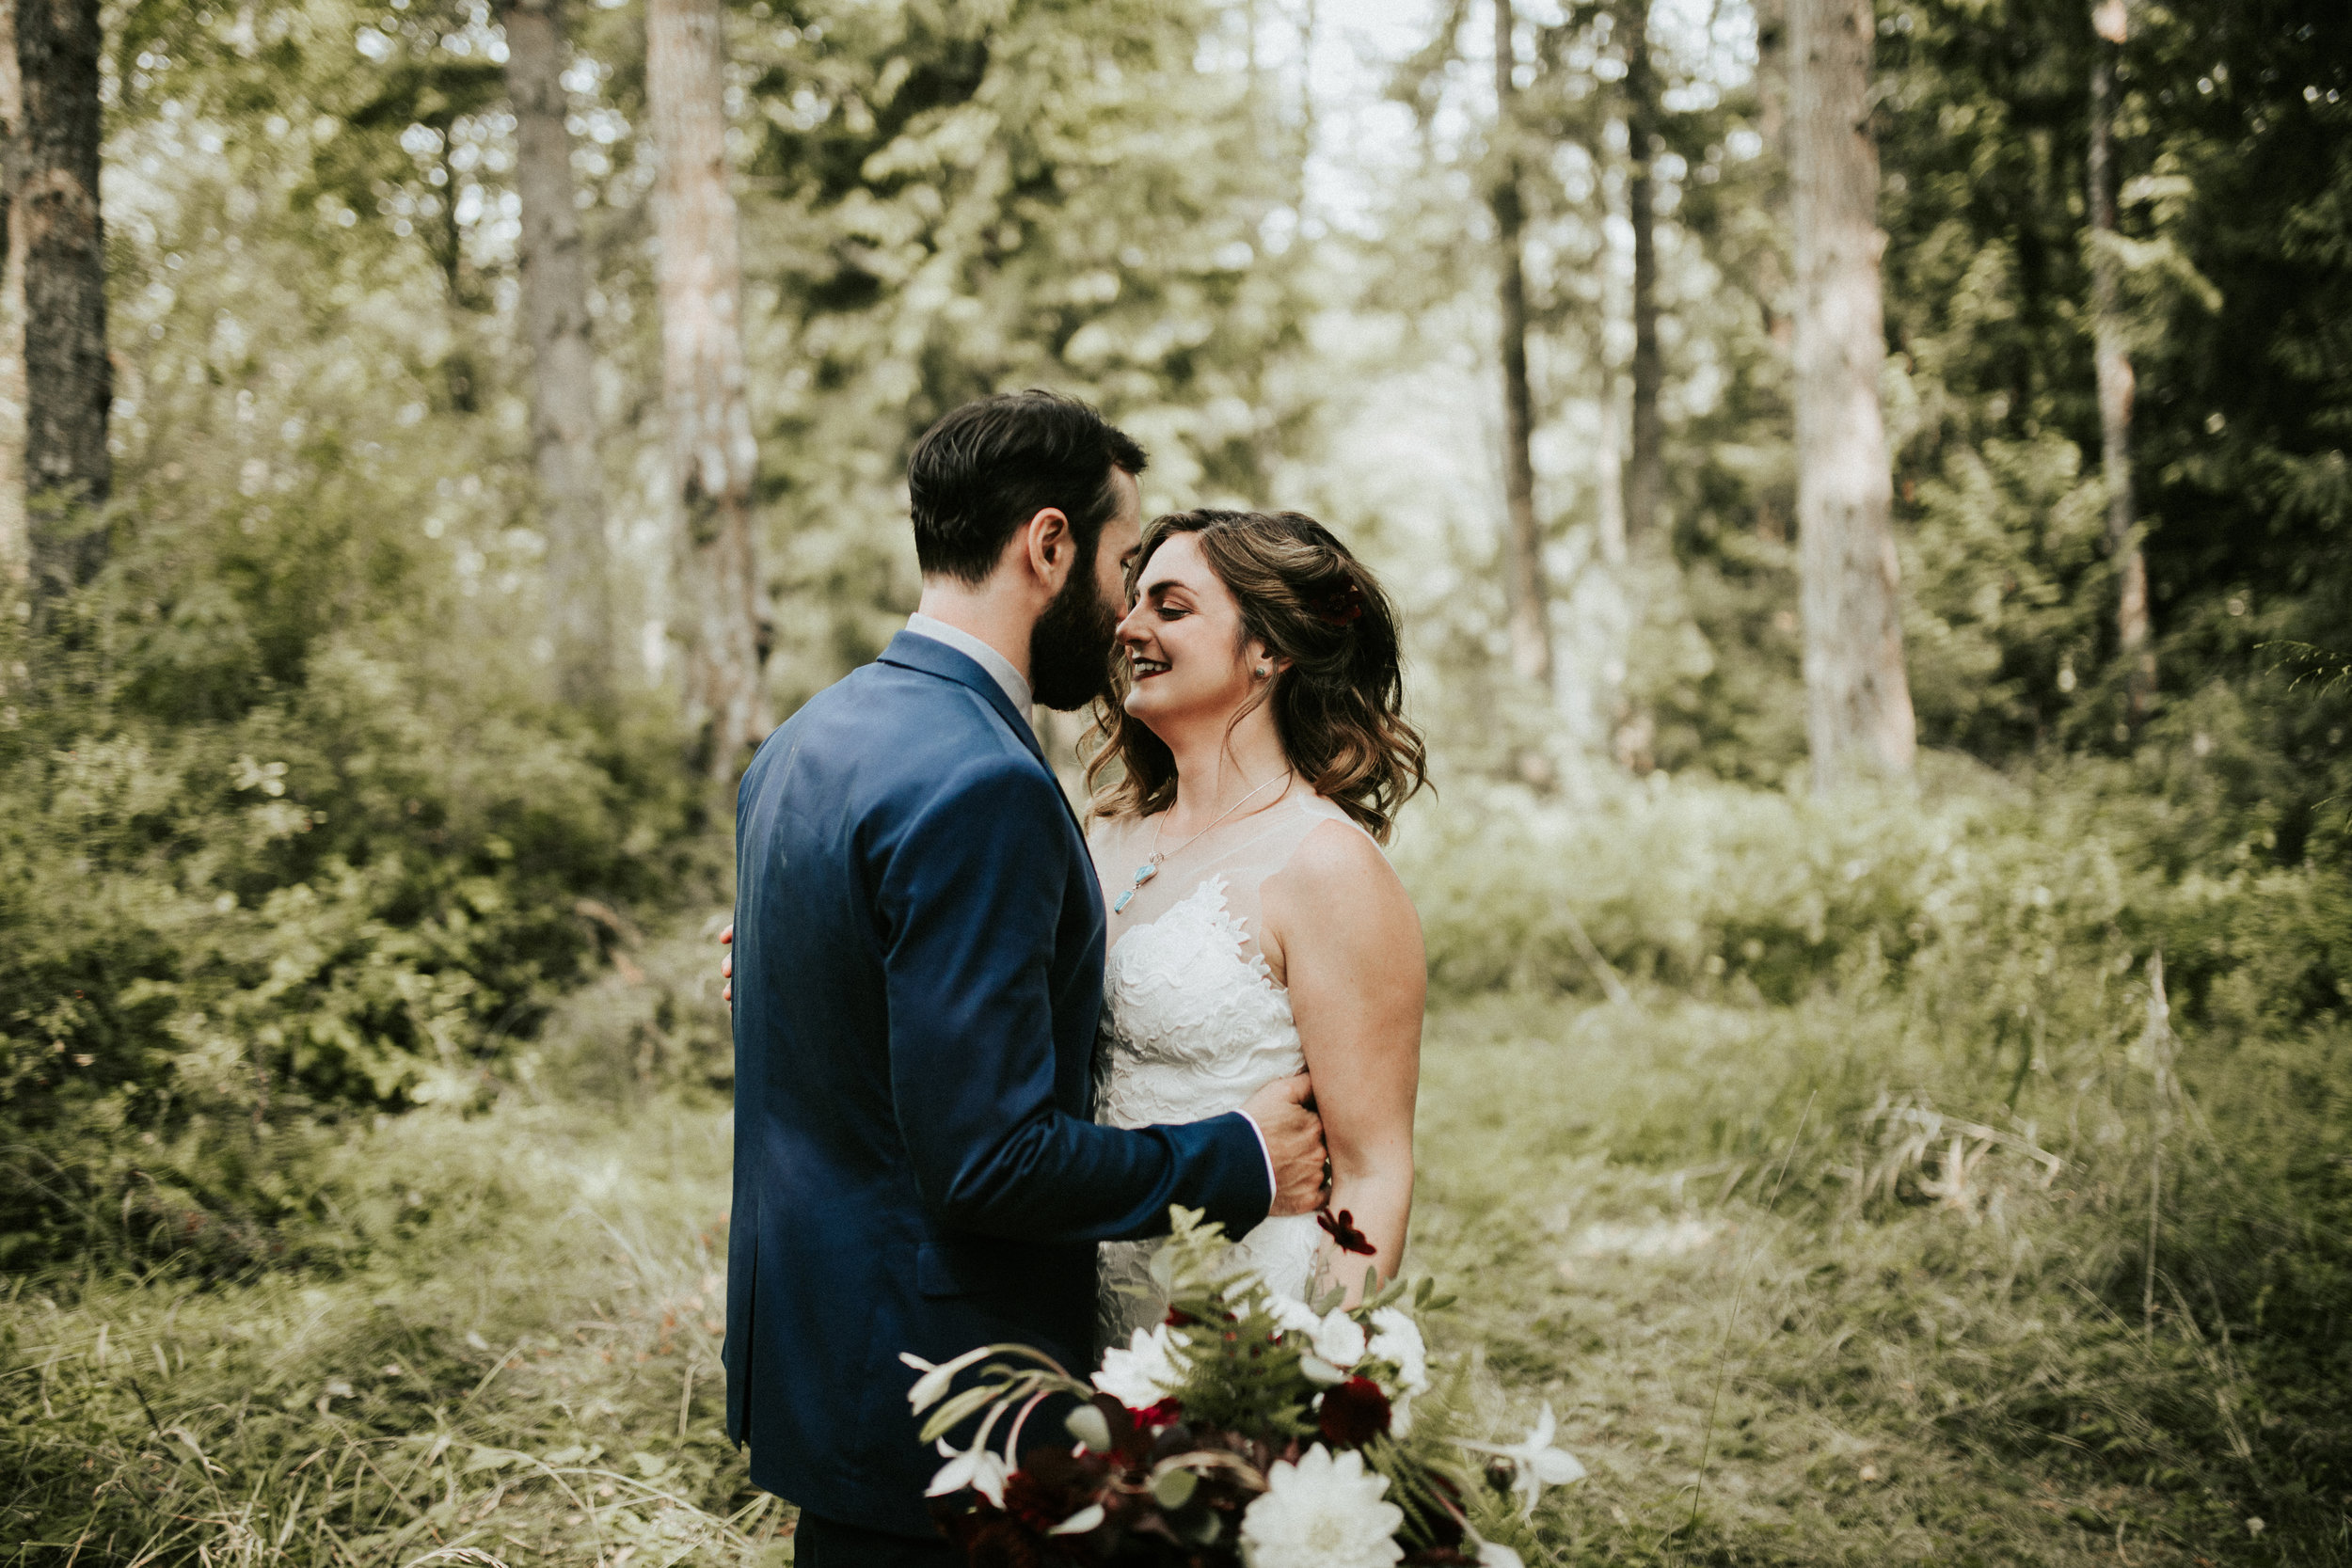 Destination wedding photographer Cassandra Michelle Photography.jpg